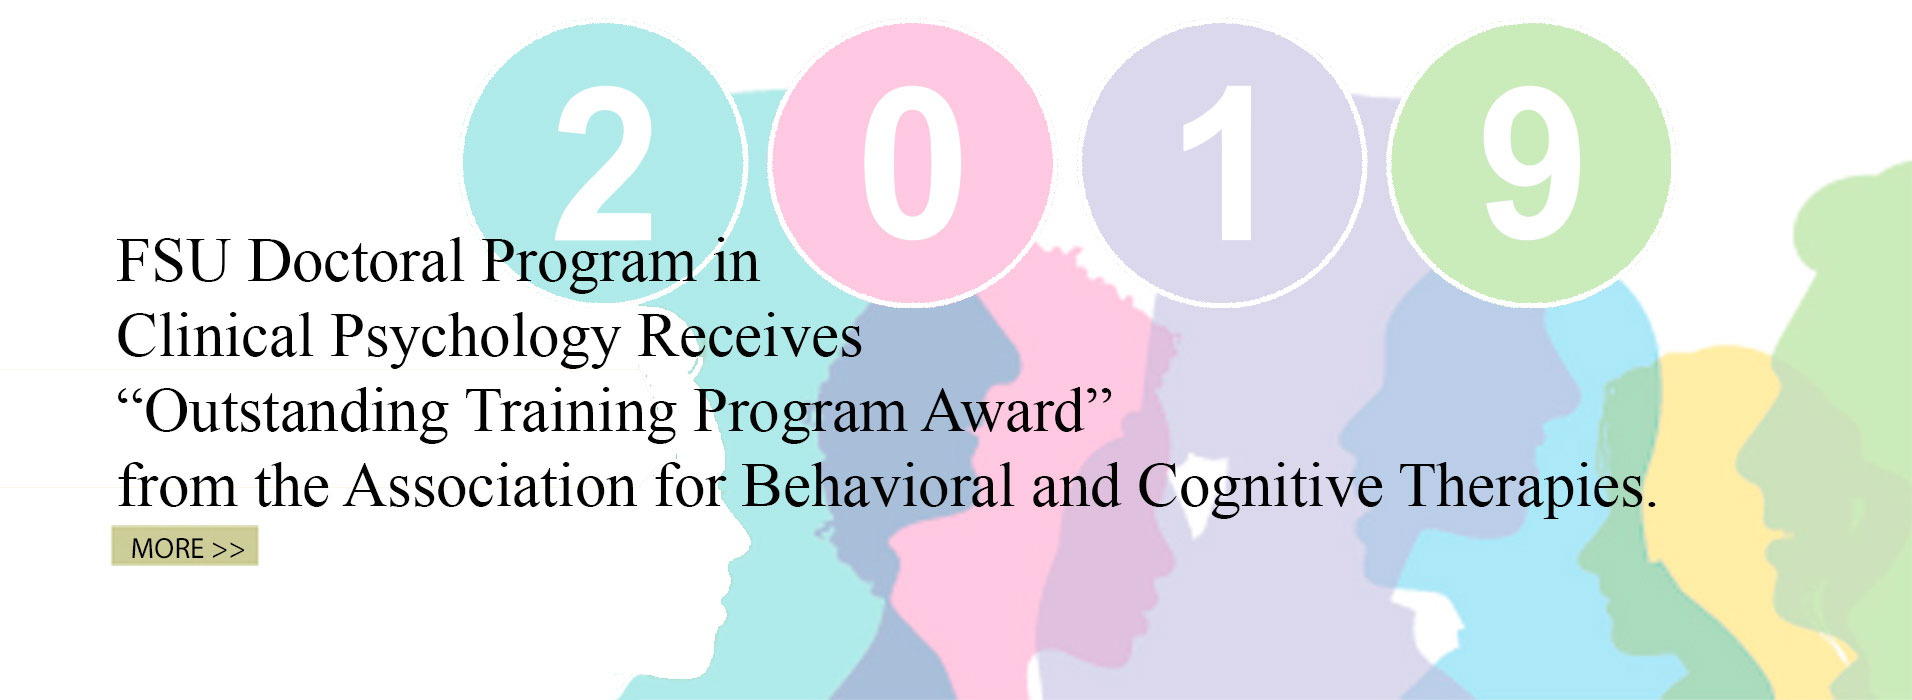 Clinical Psychology Doctoral Program Receives Outstanding Training Program Award from ABCT